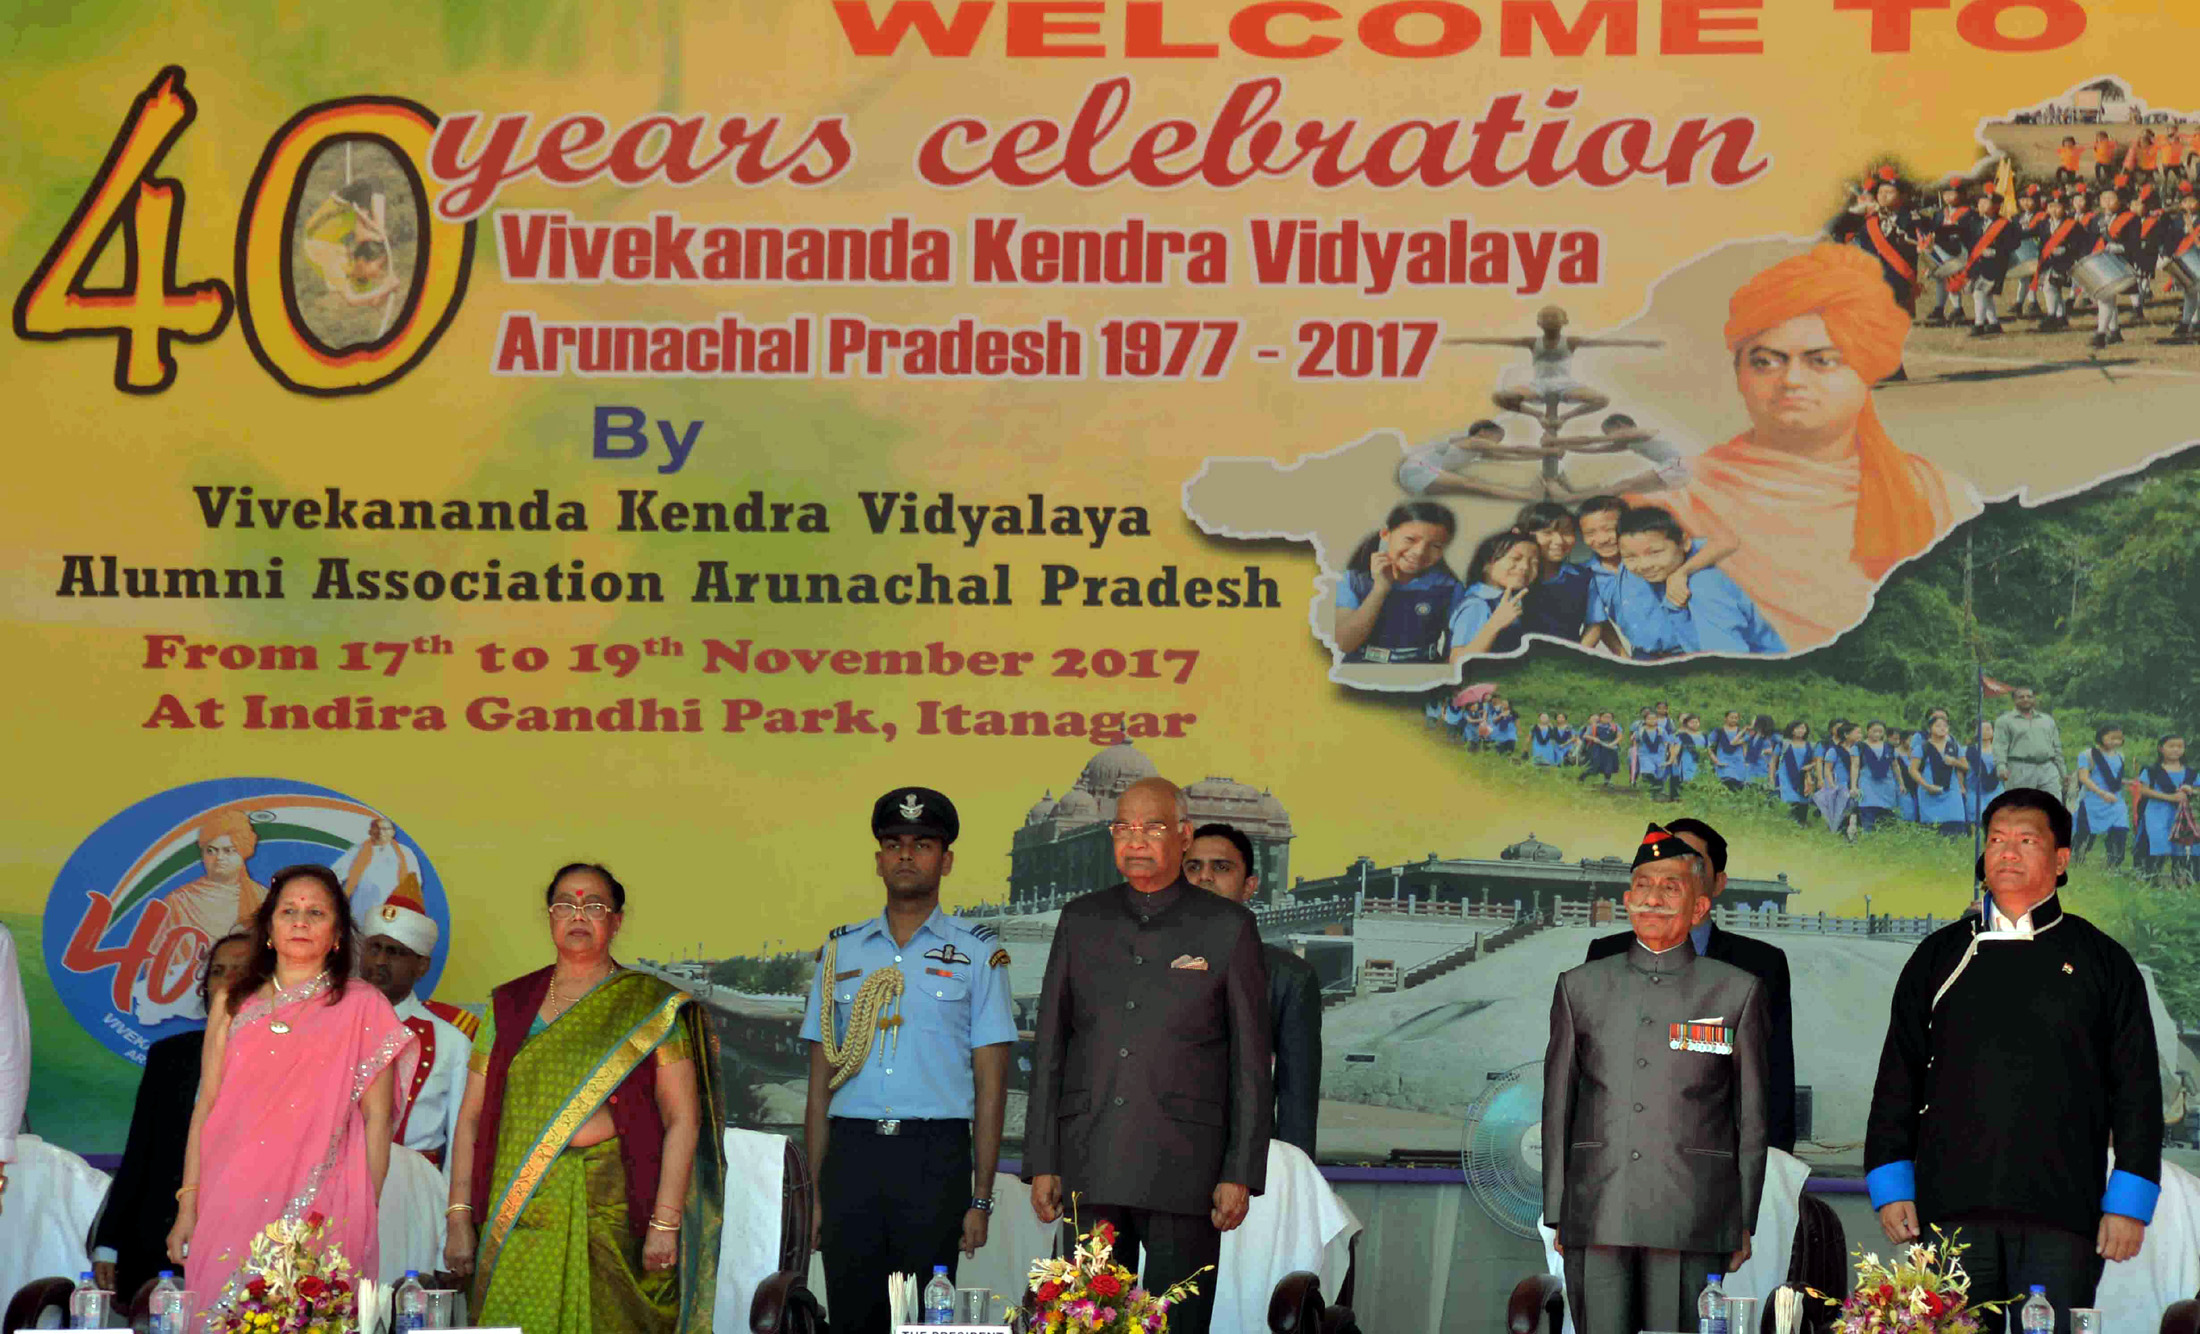 The President, Shri Ram Nath Kovind at the Valedictory function of the 40 years celebration of Vivekananda Kendra, Itanagar, in Arunachal Pradesh on November 19, 2017. The Governor of Arunachal Pradesh, Brigadier (Retd.) (Dr.) B.D. Mishra and the Chief Minister of Arunachal Pradesh, Shri Pema Khandu are also seen.